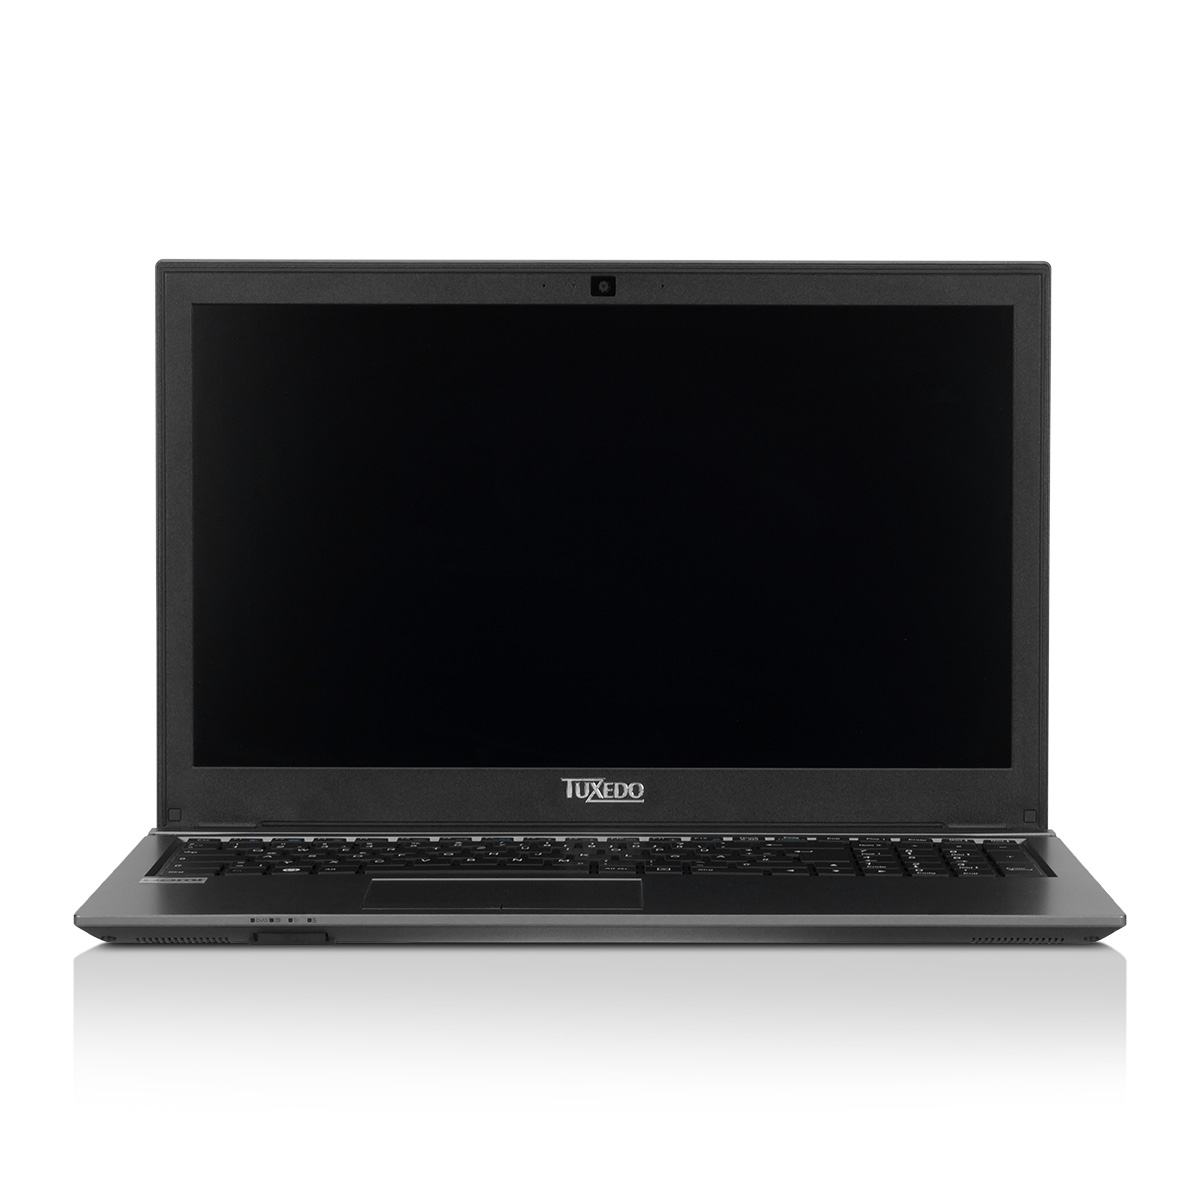 "TUXEDO Book BS1507 - 15,6"" matt Full-HD IPS + Intel Core i7 Quad-Core High-End-CPU + bis drei HDD/SSD + bis 32GB RAM + bis 5h Akku + bel. Tastatur + DVD o. Blu-Ray + LTE opt."